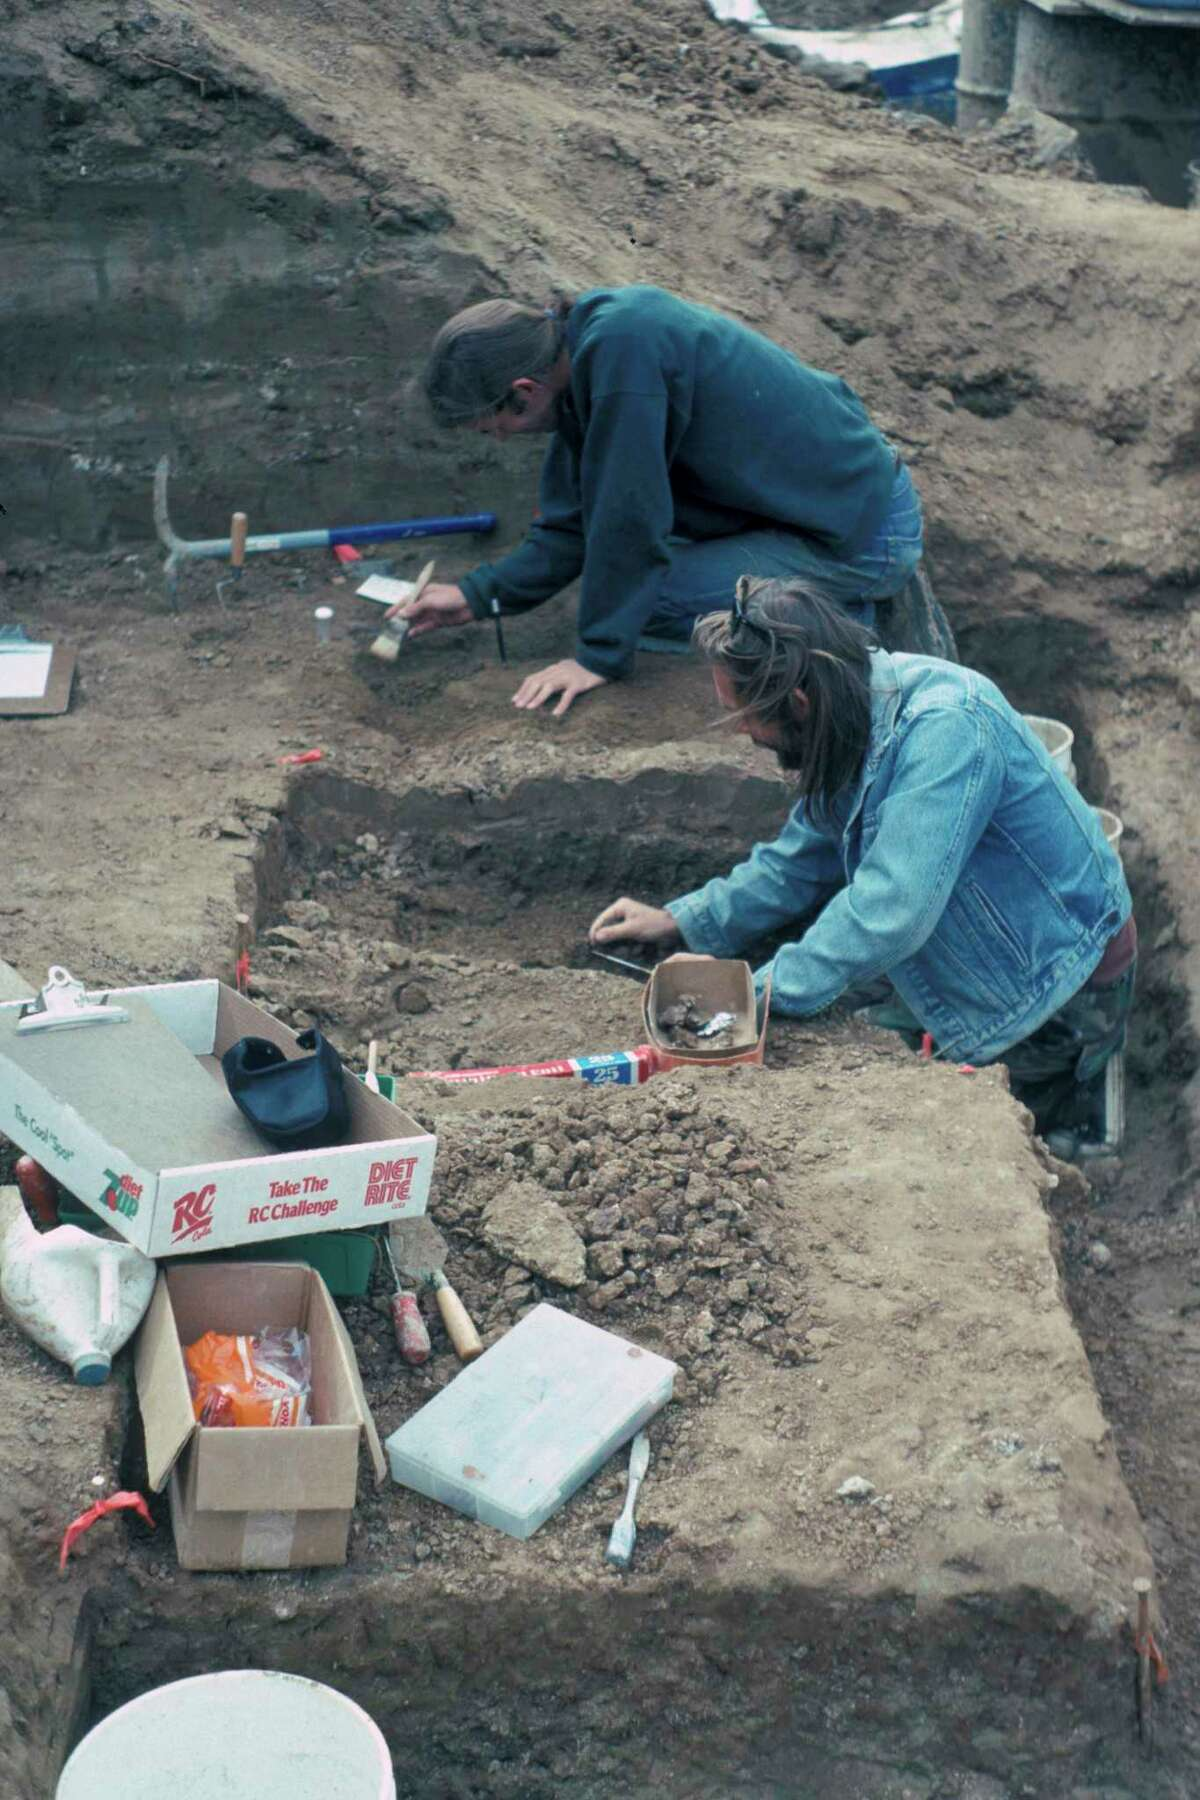 A dig in 1992-93 during a freeway project in San Diego unearthed possible evidence of human-like behavior from 130,000 years ago, when bones and teeth of a mastodon were evidently smashed with rocks.